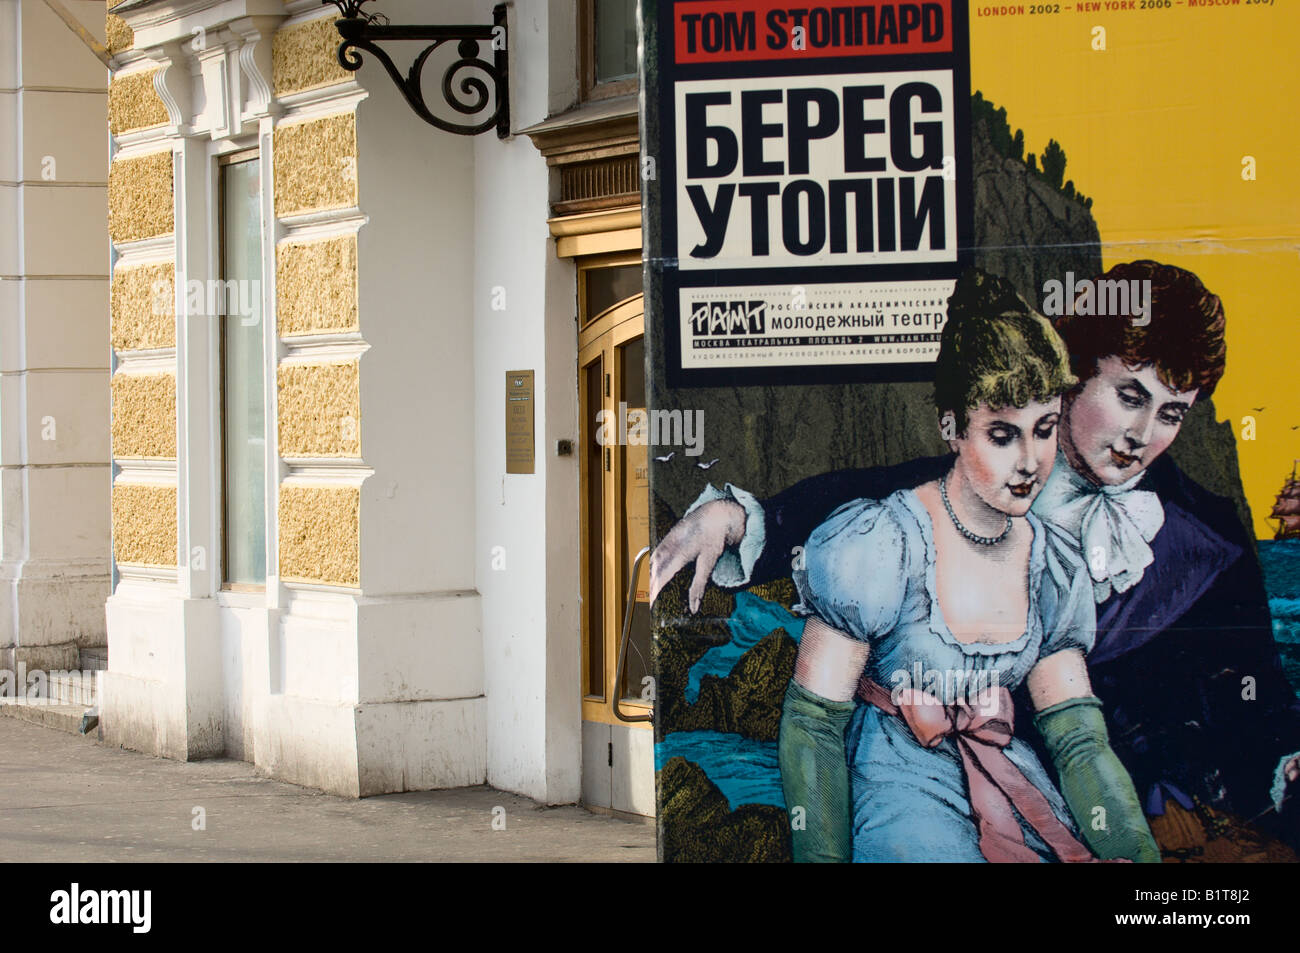 Poster for Tom Stoppard Play Theatre Square Moscow Russian Federation Stock Photo